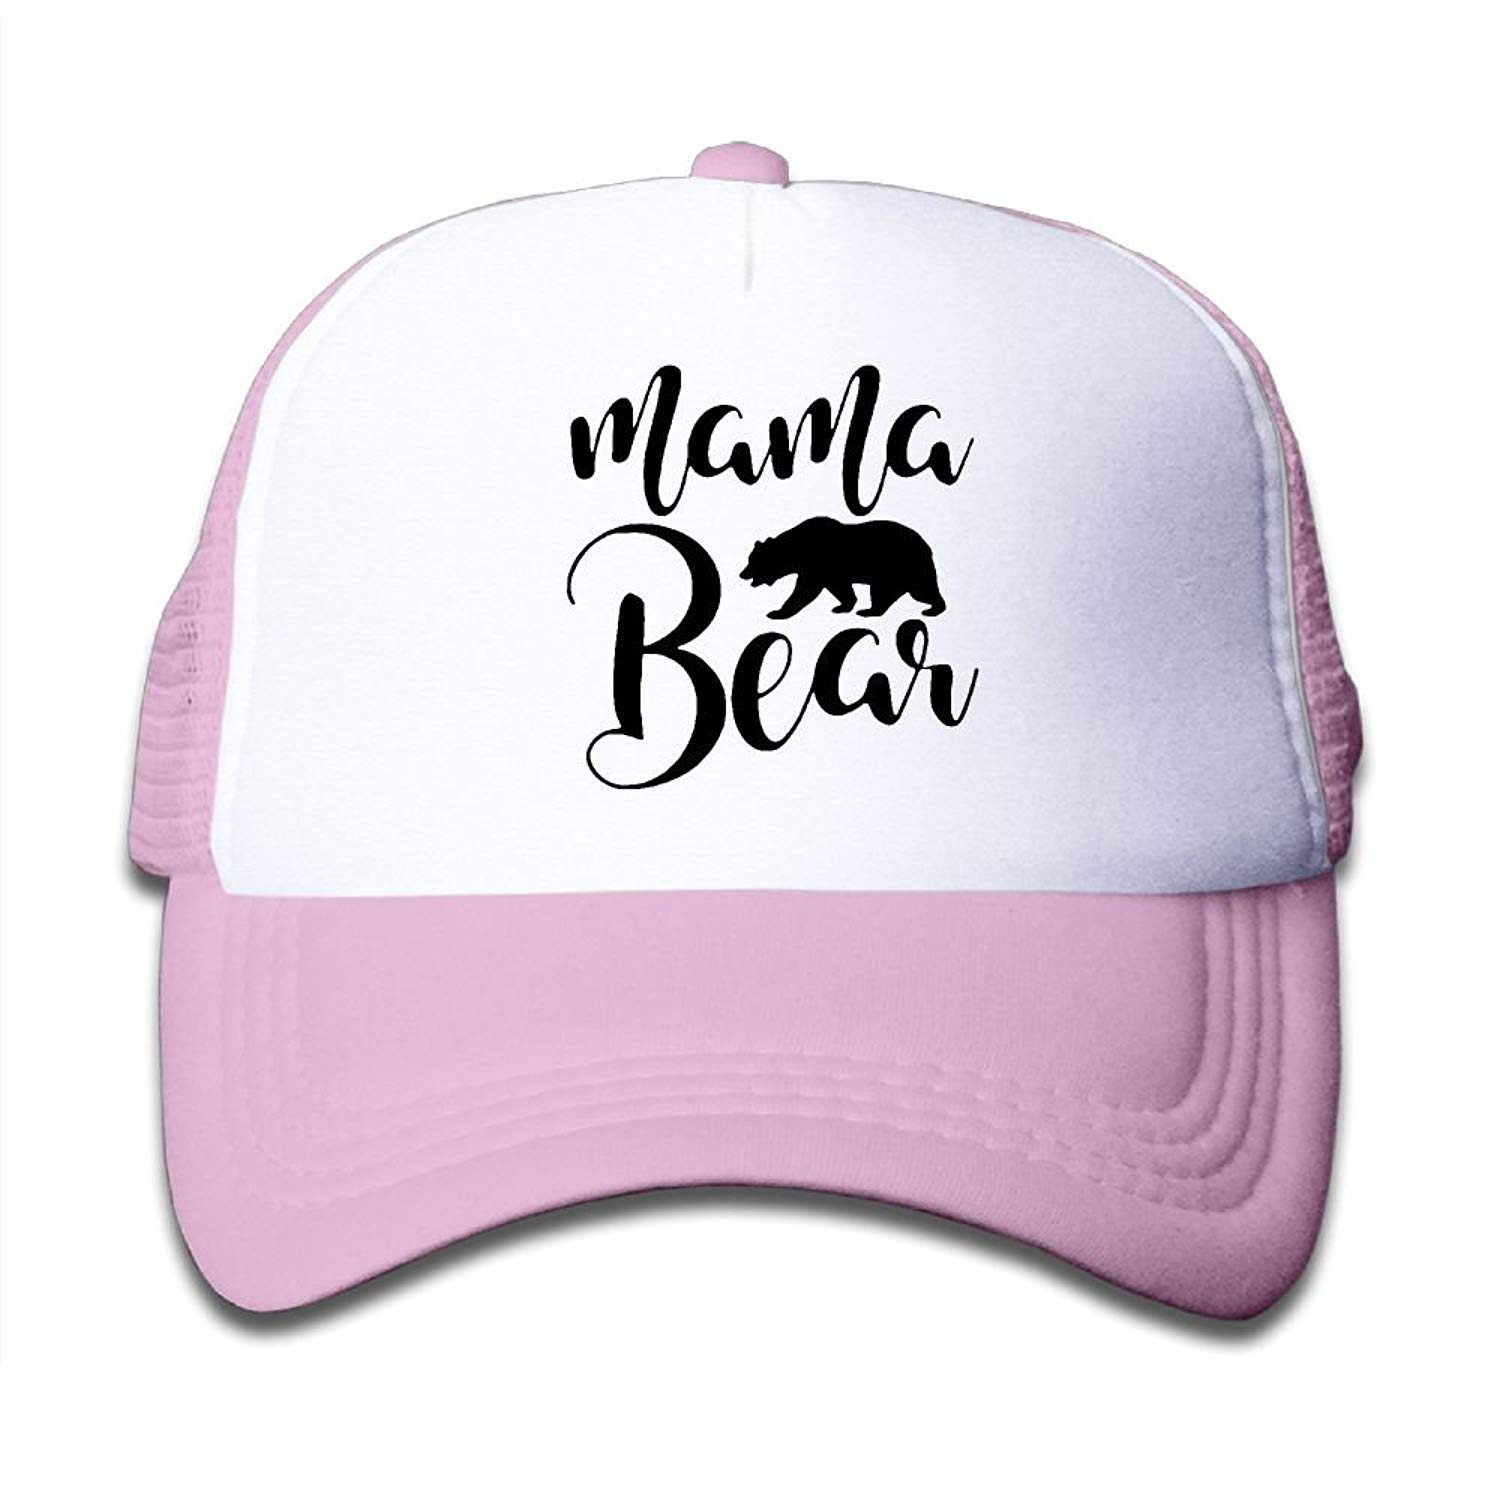 1bb63ef6fb4 Get Quotations · BOYGIRL-CAP Mama Bear Kids Toddler Boys Girls Adjustable  Mesh Cap Baseball Caps Trucker Hat